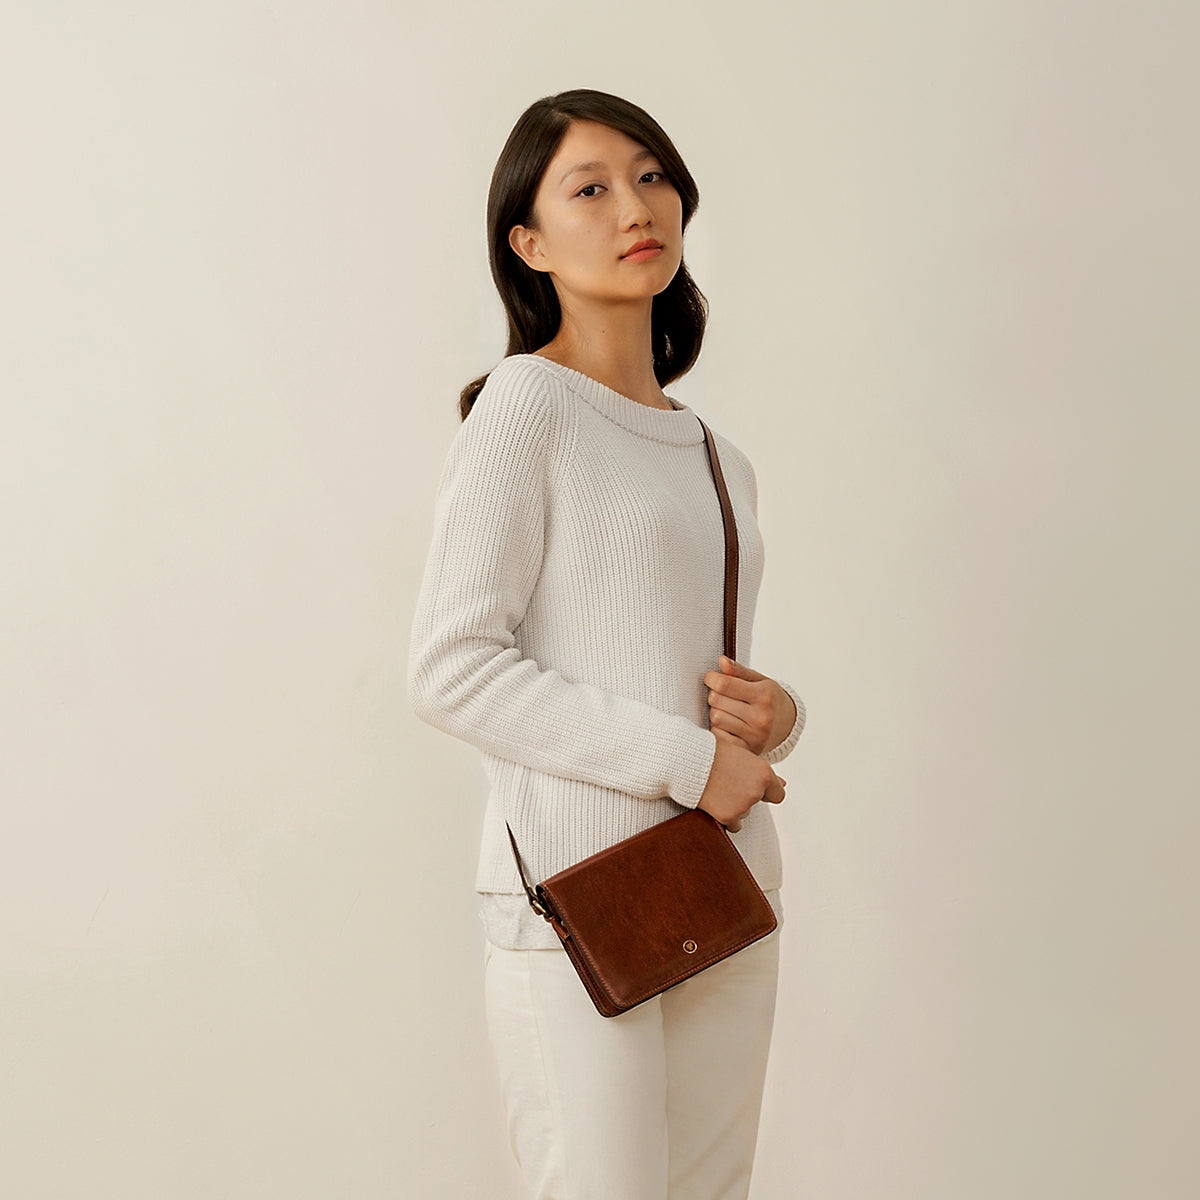 Image 7 of the 'Lucca' Small Chestnut Veg-Tanned Leather Handbag